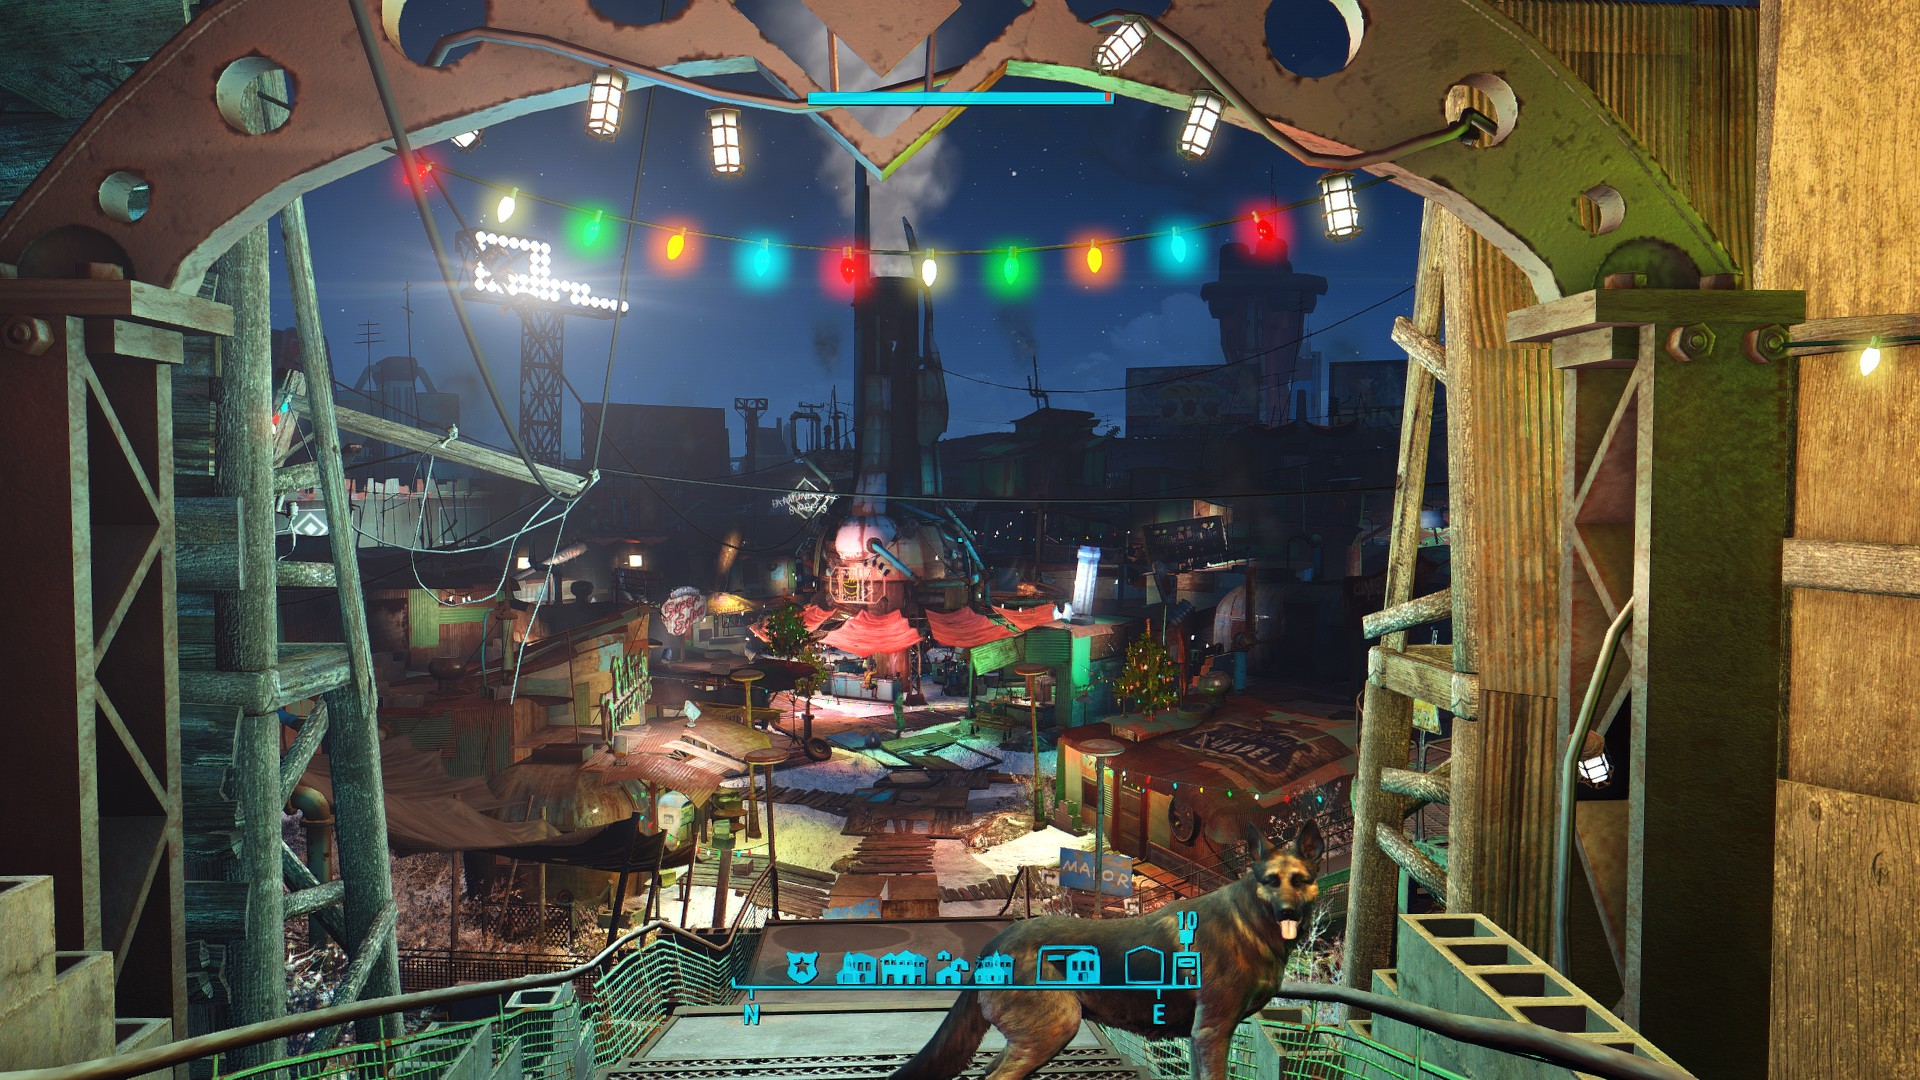 Extended Diamond City Holidays для Fallout 4 - Скриншот 1